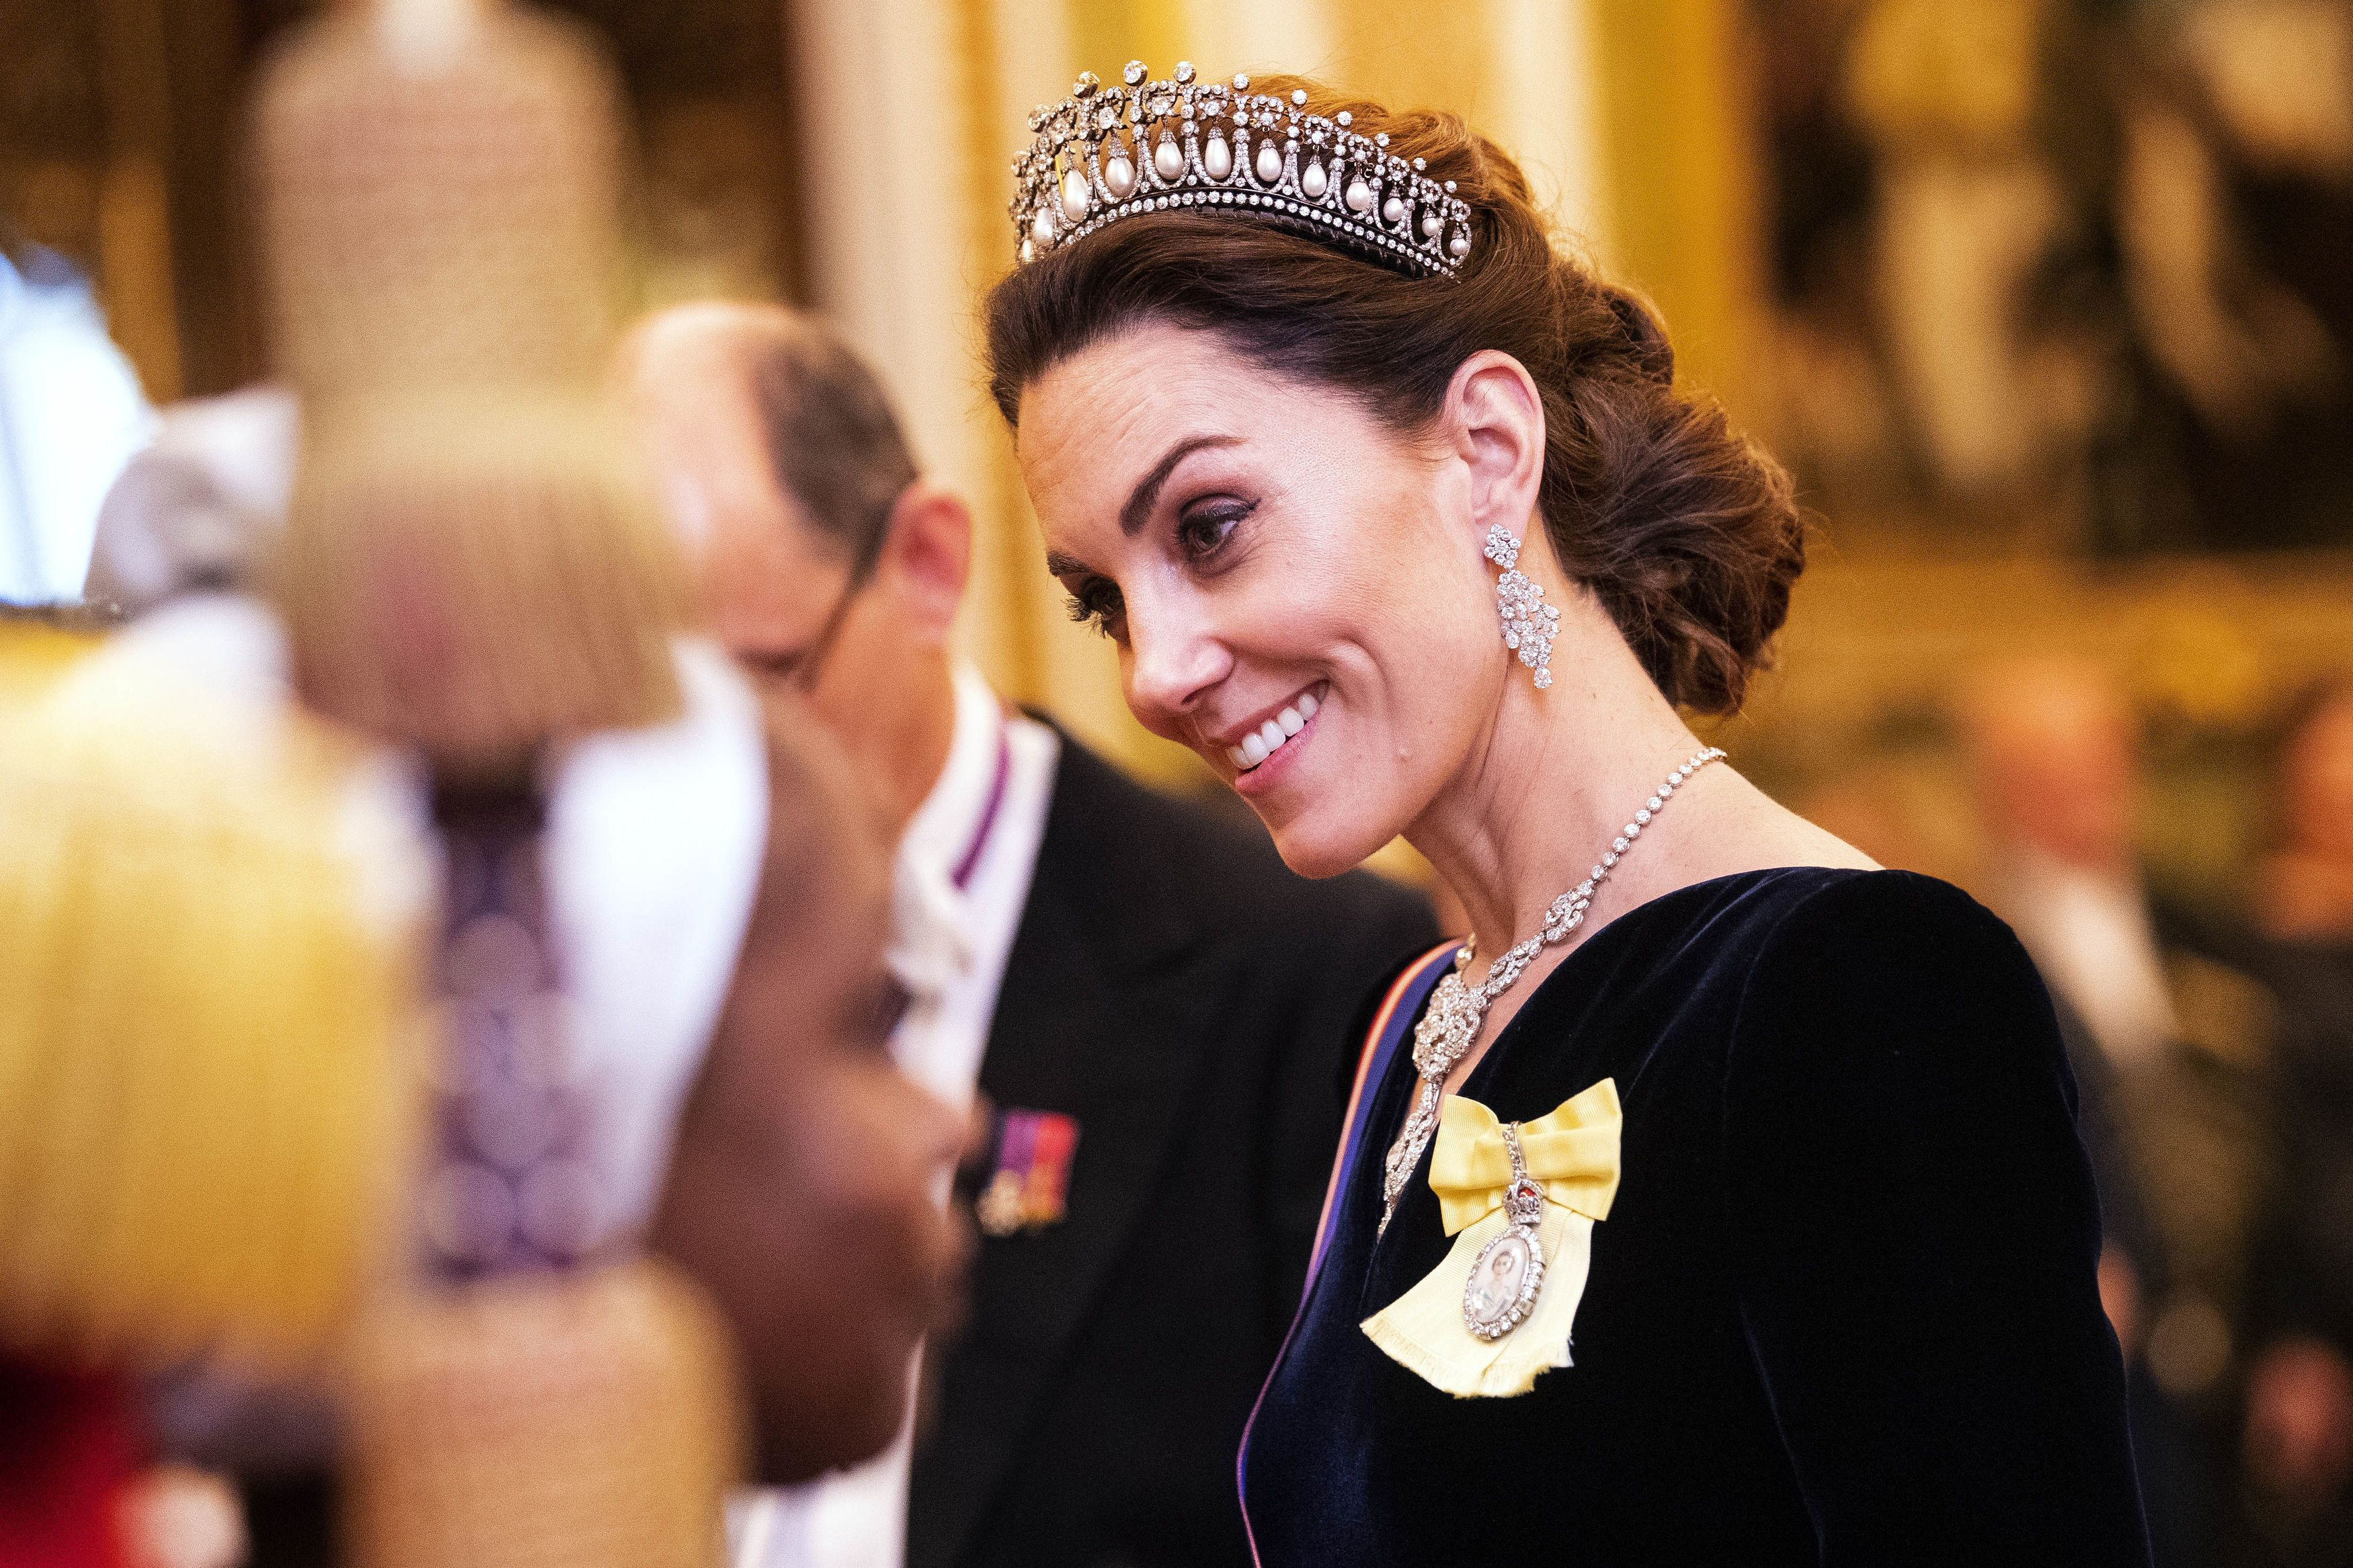 The History Behind Kate Middleton's Diplomatic Reception Necklace